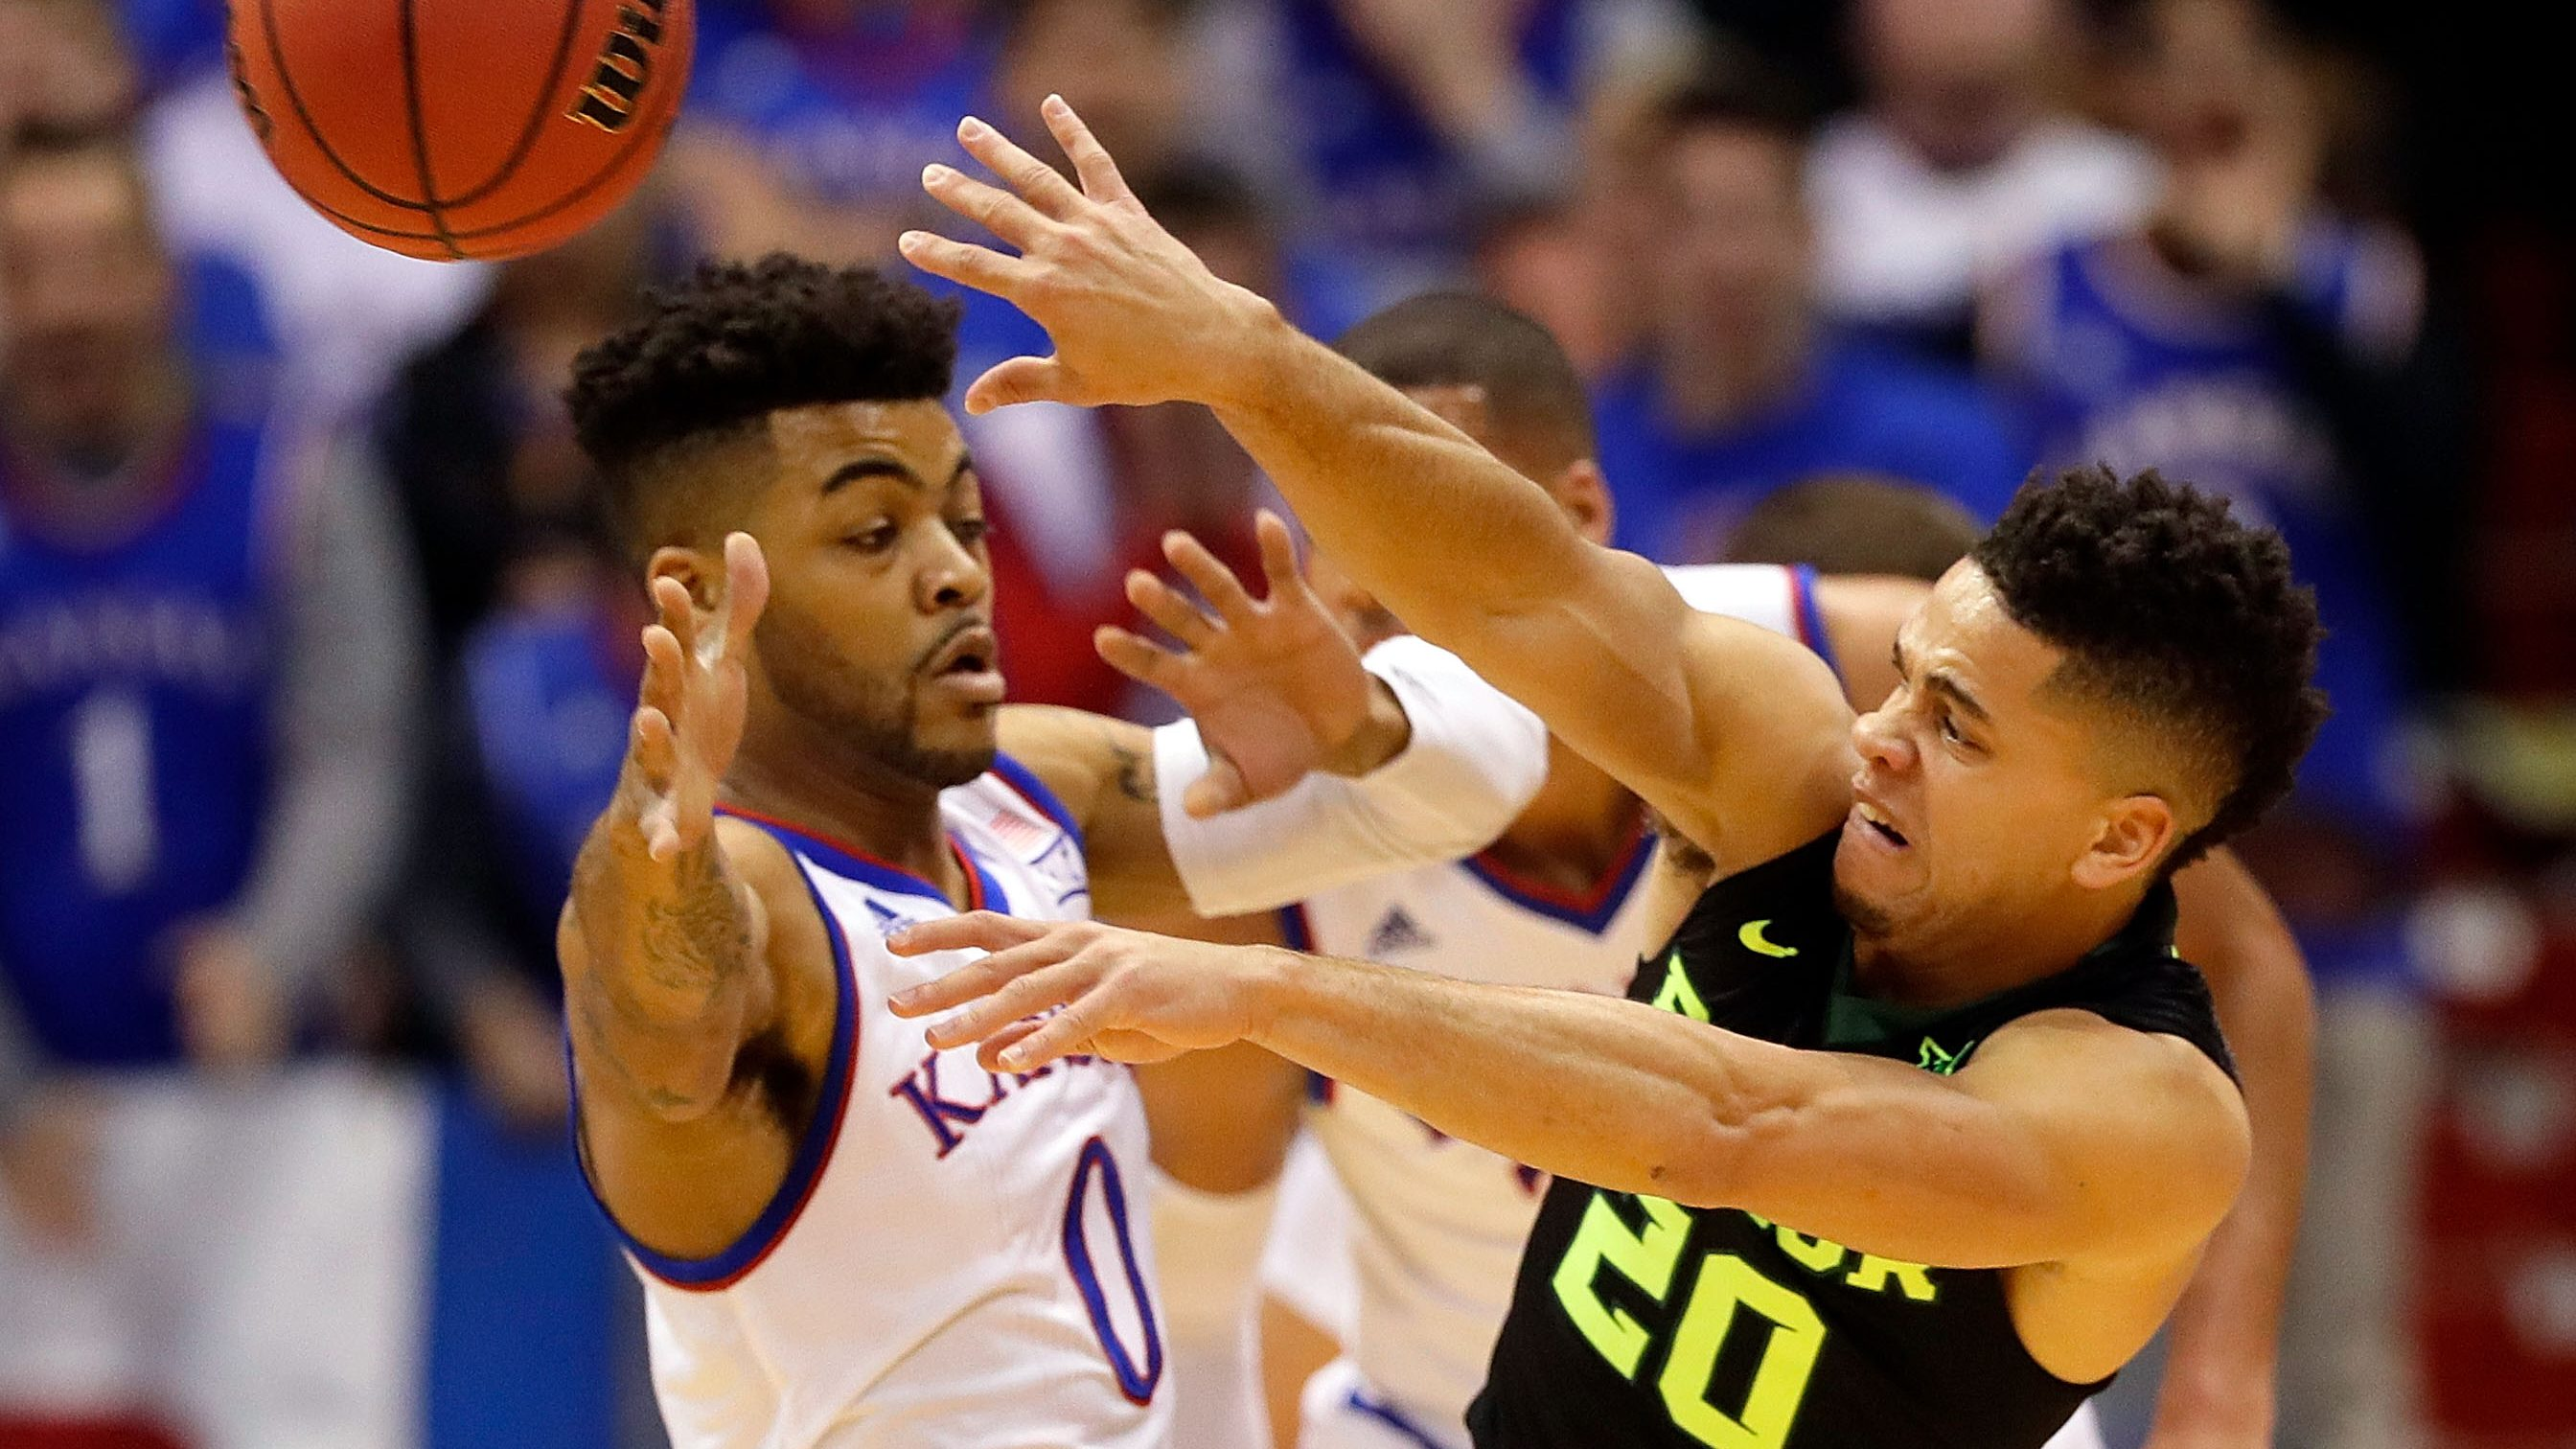 LAWRENCE, KS - FEBRUARY 01: Manu Lecomte #20 of the Baylor Bearspasses as Frank Mason III #0 of the Kansas Jayhawks defends during the game at Allen Fieldhouse on February 1, 2017 in Lawrence, Kansas. (Photo by Jamie Squire/Getty Images)